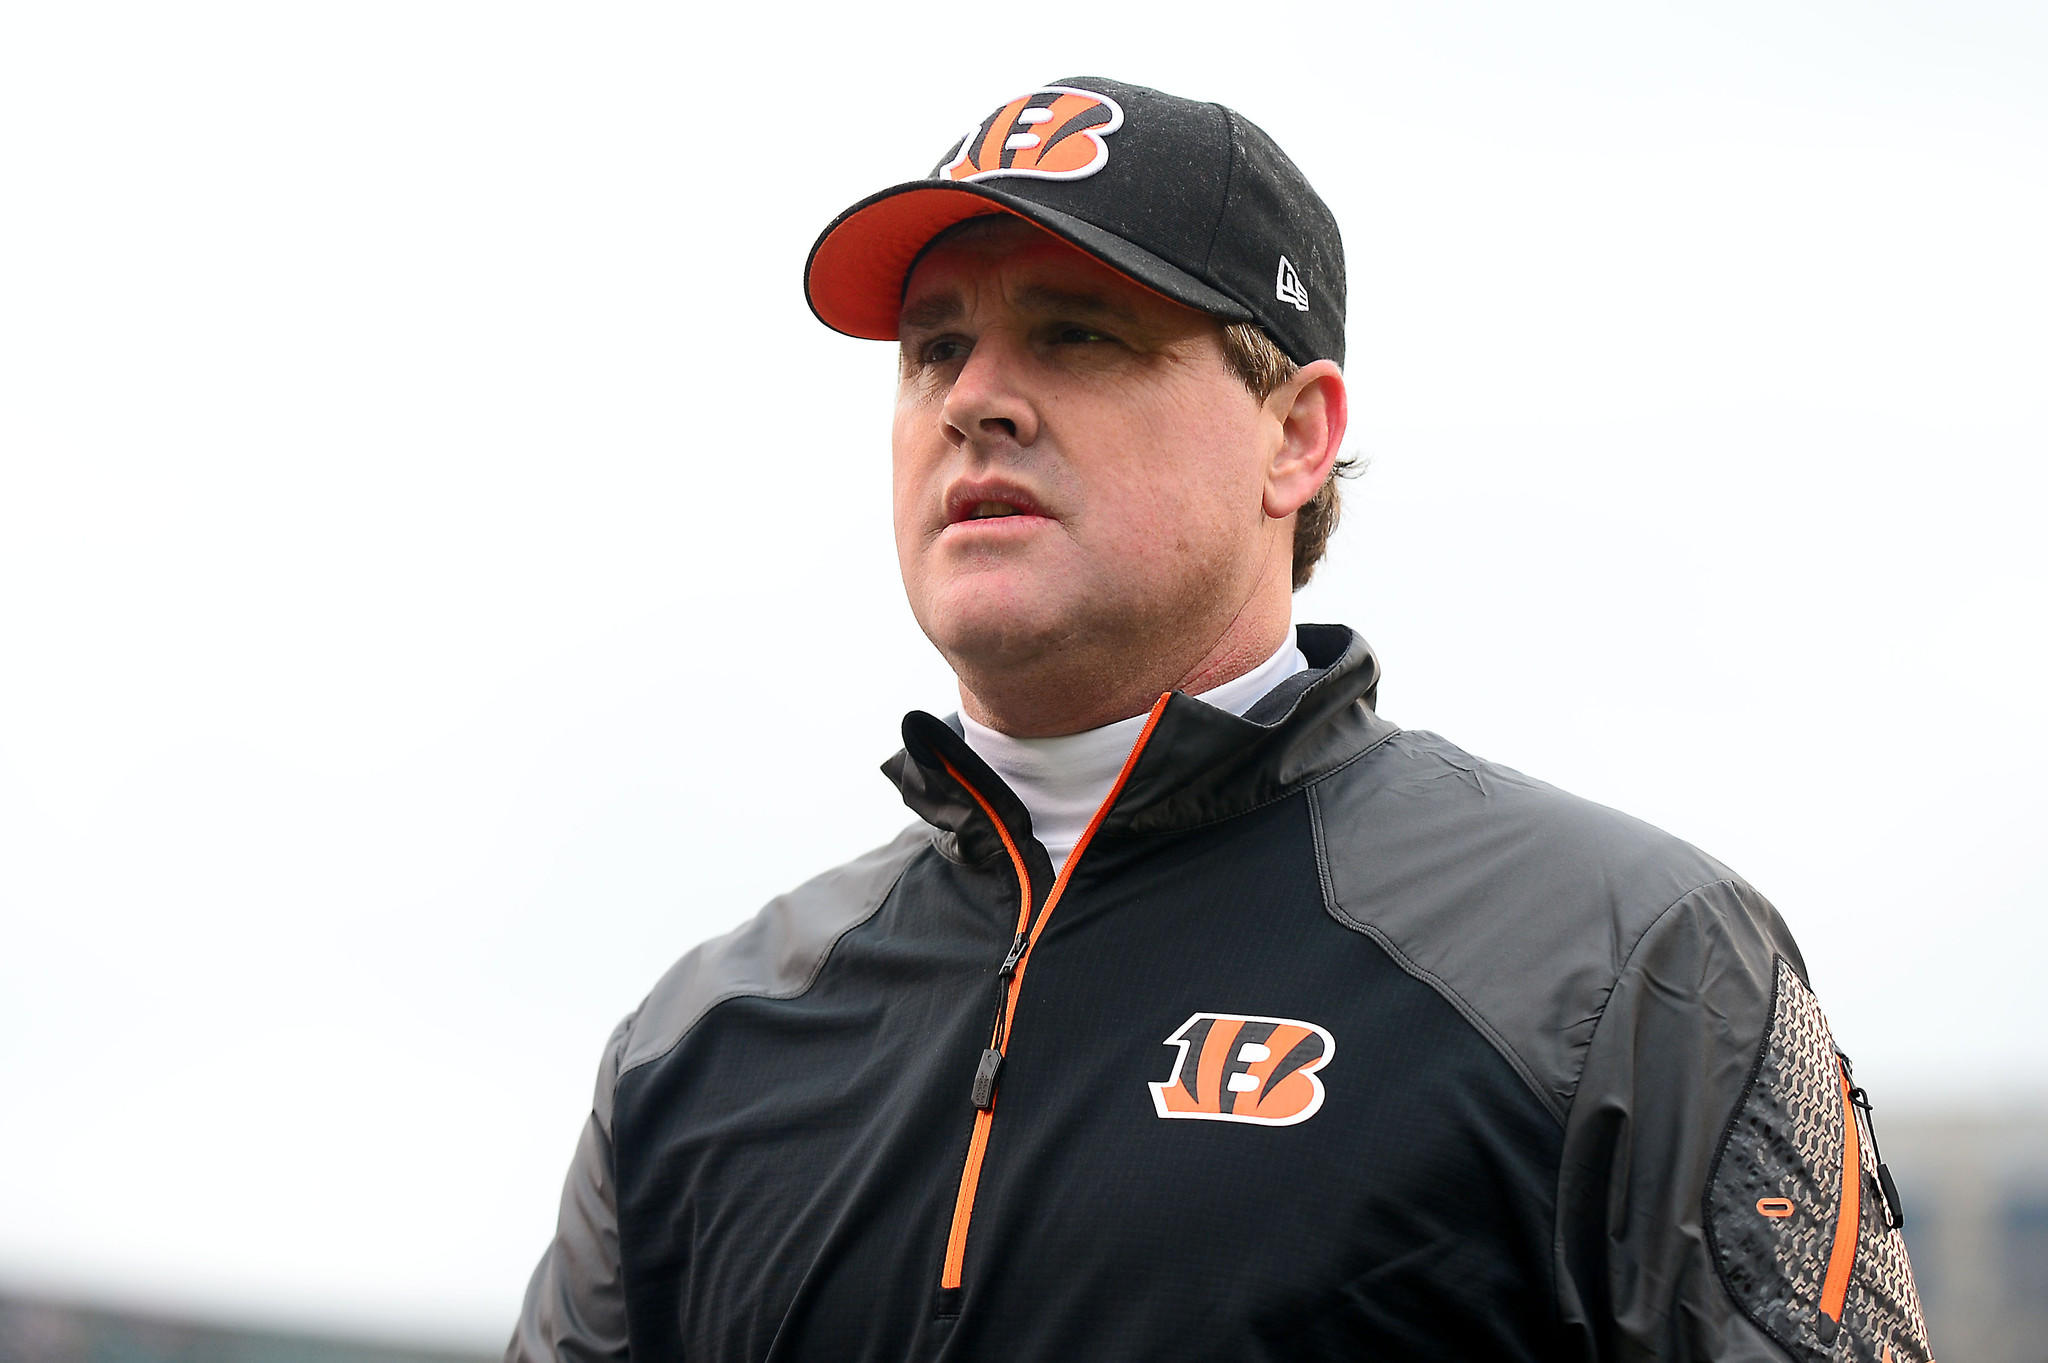 Cincinnati Bengals offensive coordinator Jay Gruden prior to a game against the Baltimore Ravens at Paul Brown Stadium.